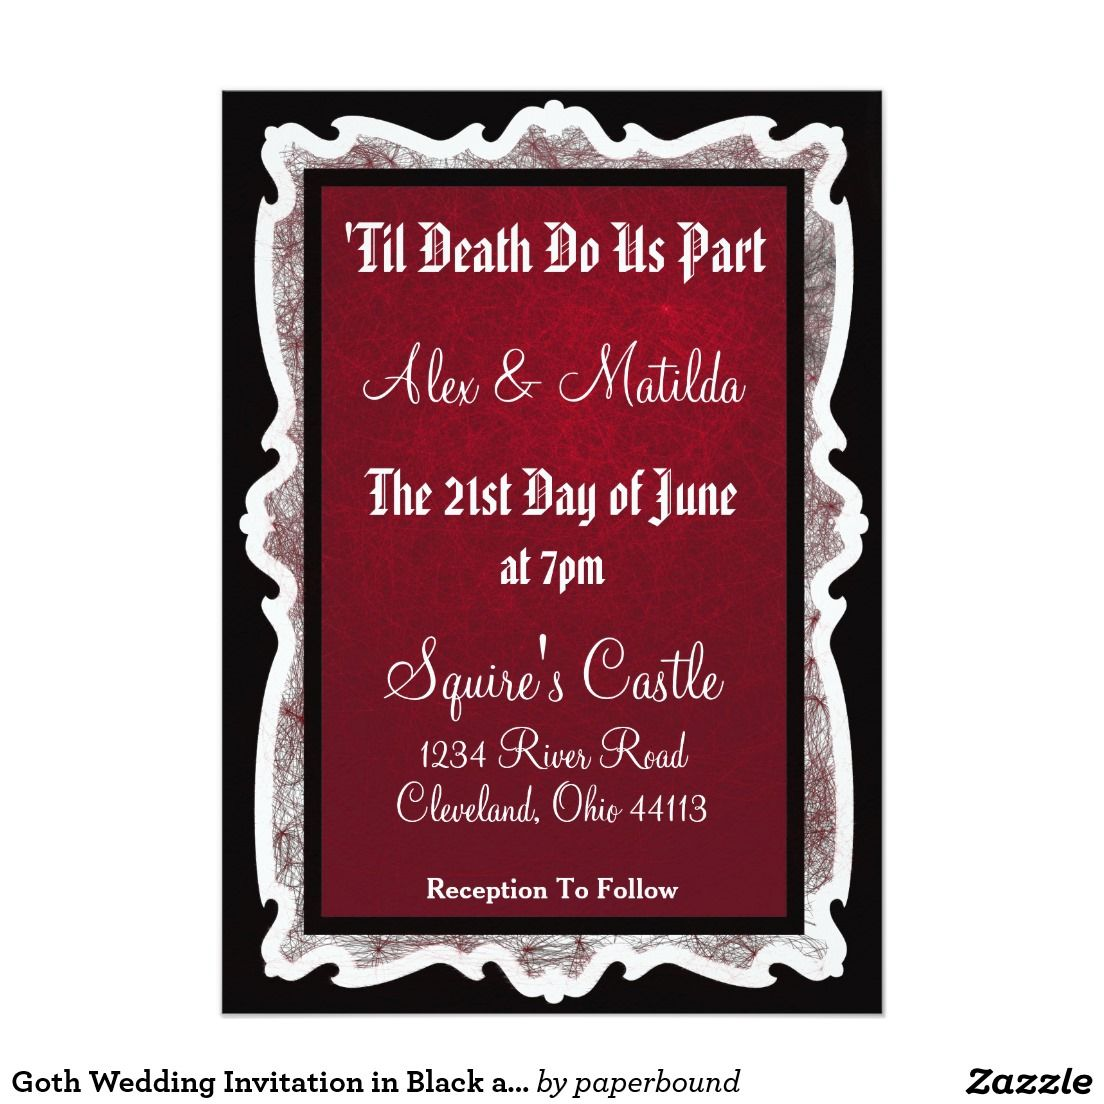 Goth Wedding Invitation in Black and Red